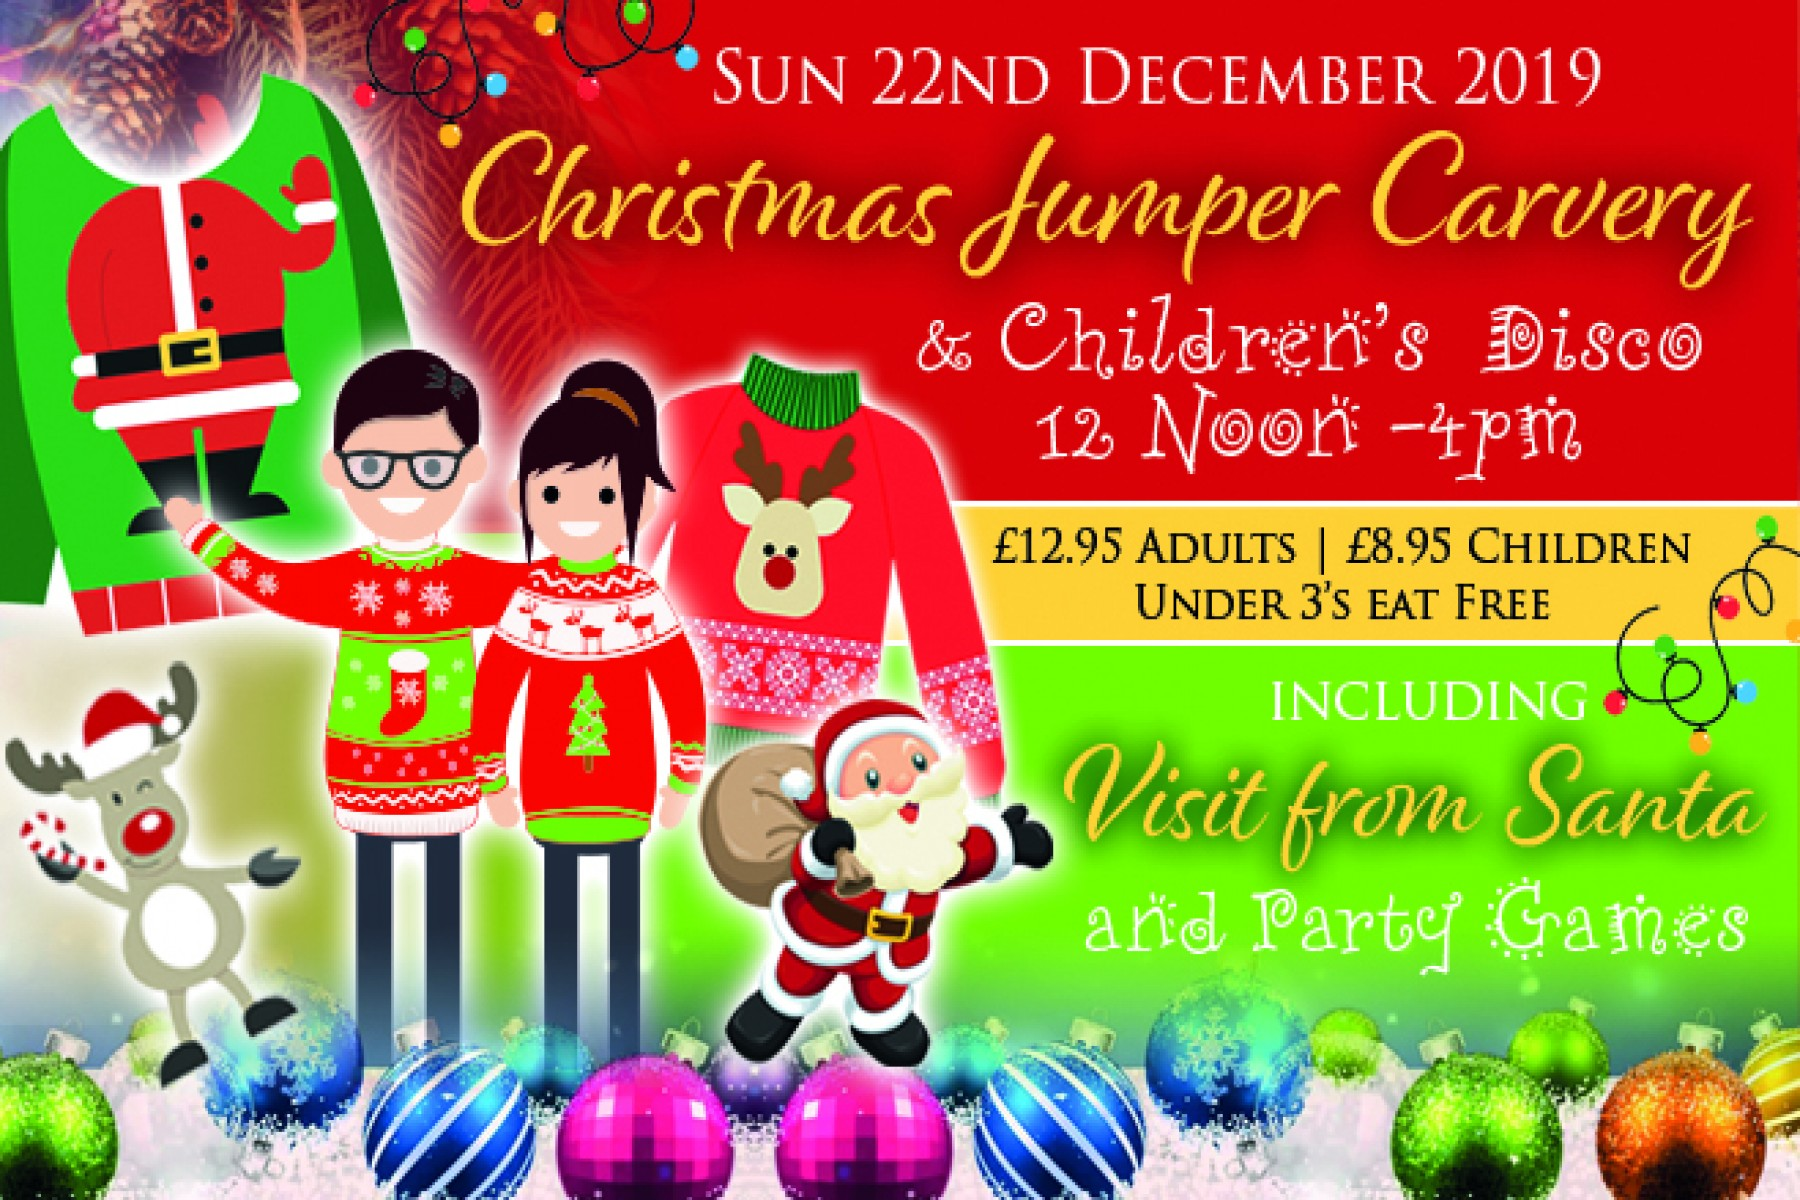 Christmas Jumper Carvery (22nd Dec 2019)